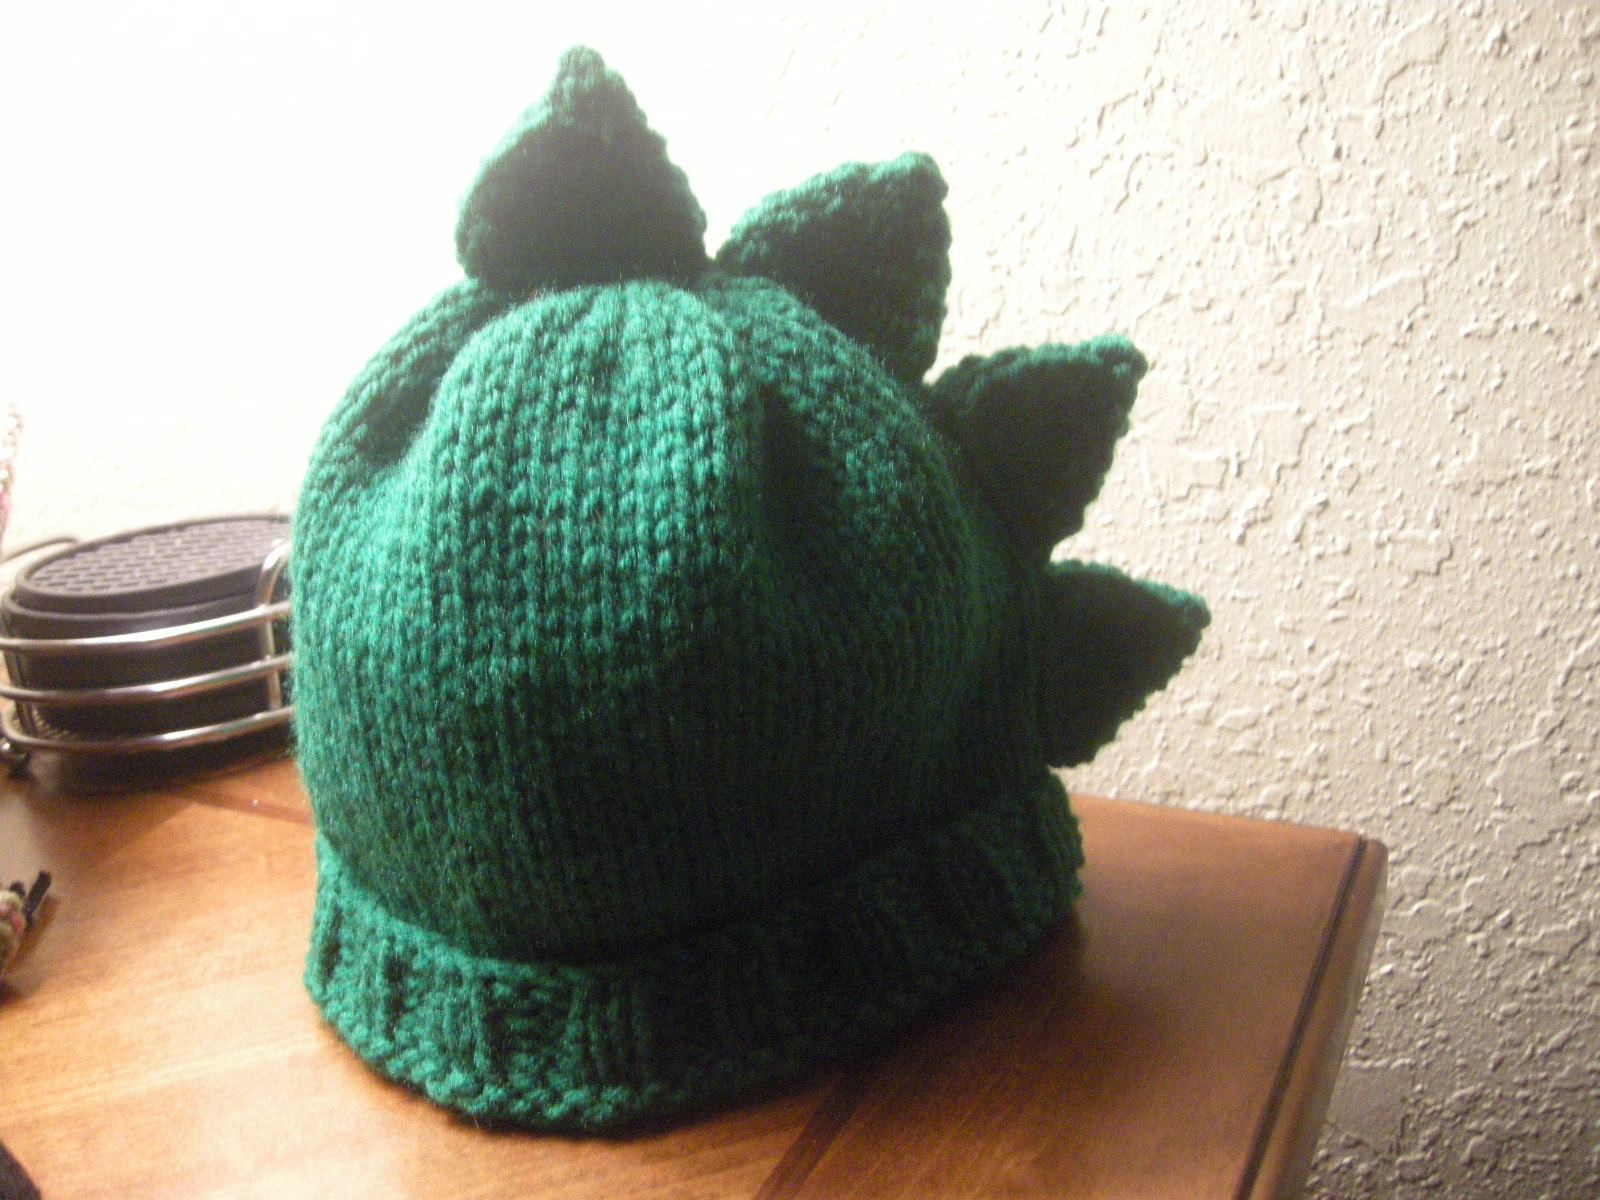 Knit Dinosaur Pattern : The Knit Ninja: Dino Spikes Knitting Pattern